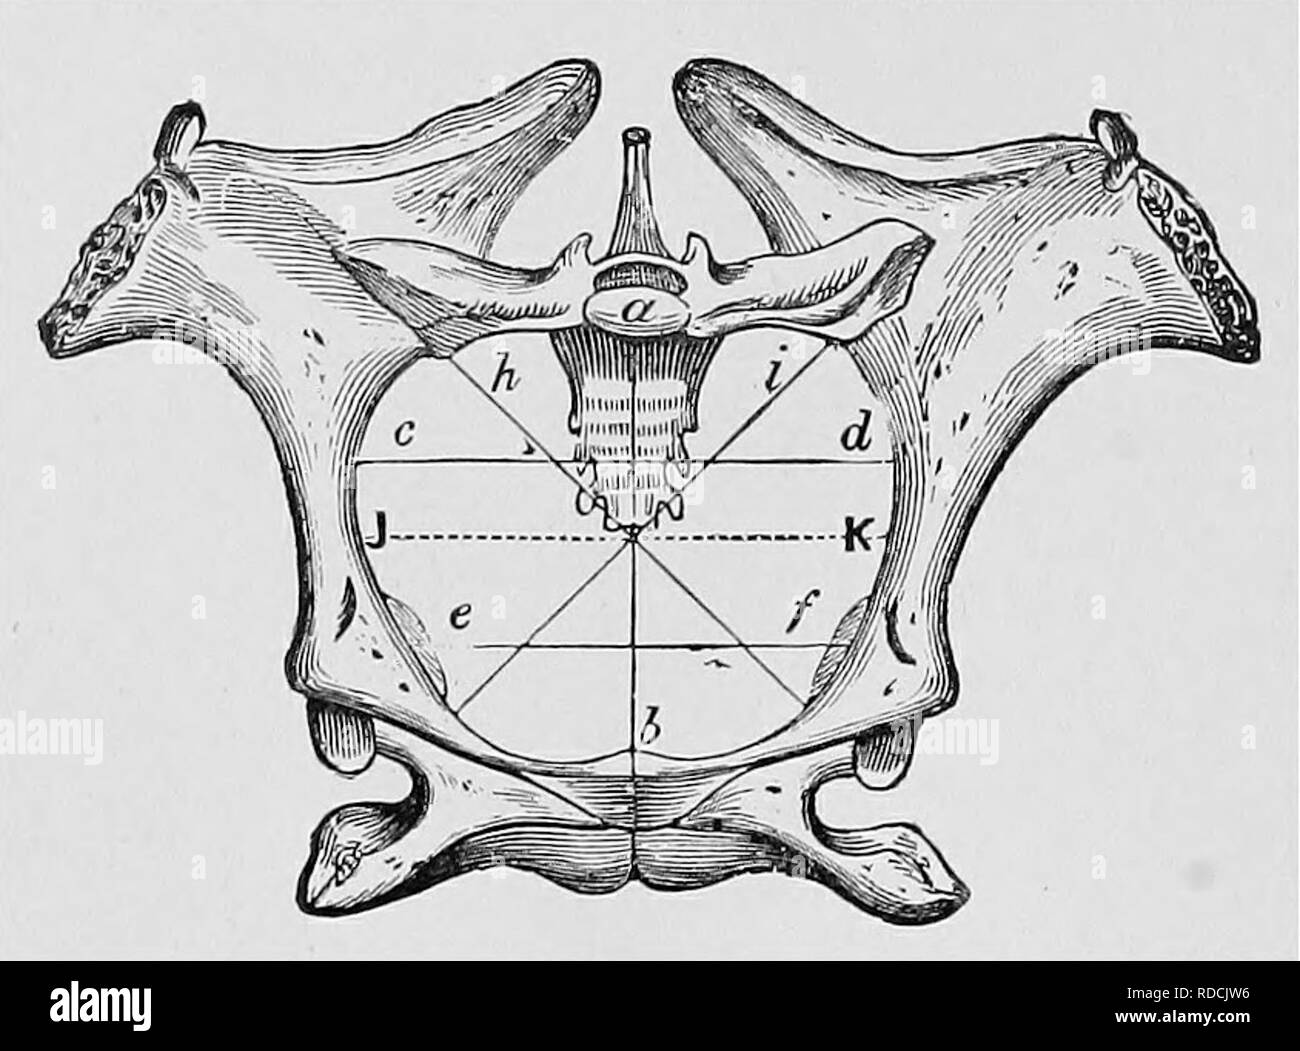 . Veterinary obstetrics; a compendium for the use of students and practitioners. Veterinary obstetrics. i6 VETERINARY OBSTETRICS. The outlet of the Mare's pelvis Is limited above by the apex of the sacrum and the base of the coccyx, and below by the Ischial arch formed by the junction of the two ischia; and laterally by the upper surface of the ischia, and posterior border of the sacro-sclatic ligaments. The diameters are usually less than those of the Inlet. The pelvis of the Cow is longer than that of the Mare, and not so vertical; the Ischlo-pubic symphysis is longer, and is very curved, ma - Stock Image